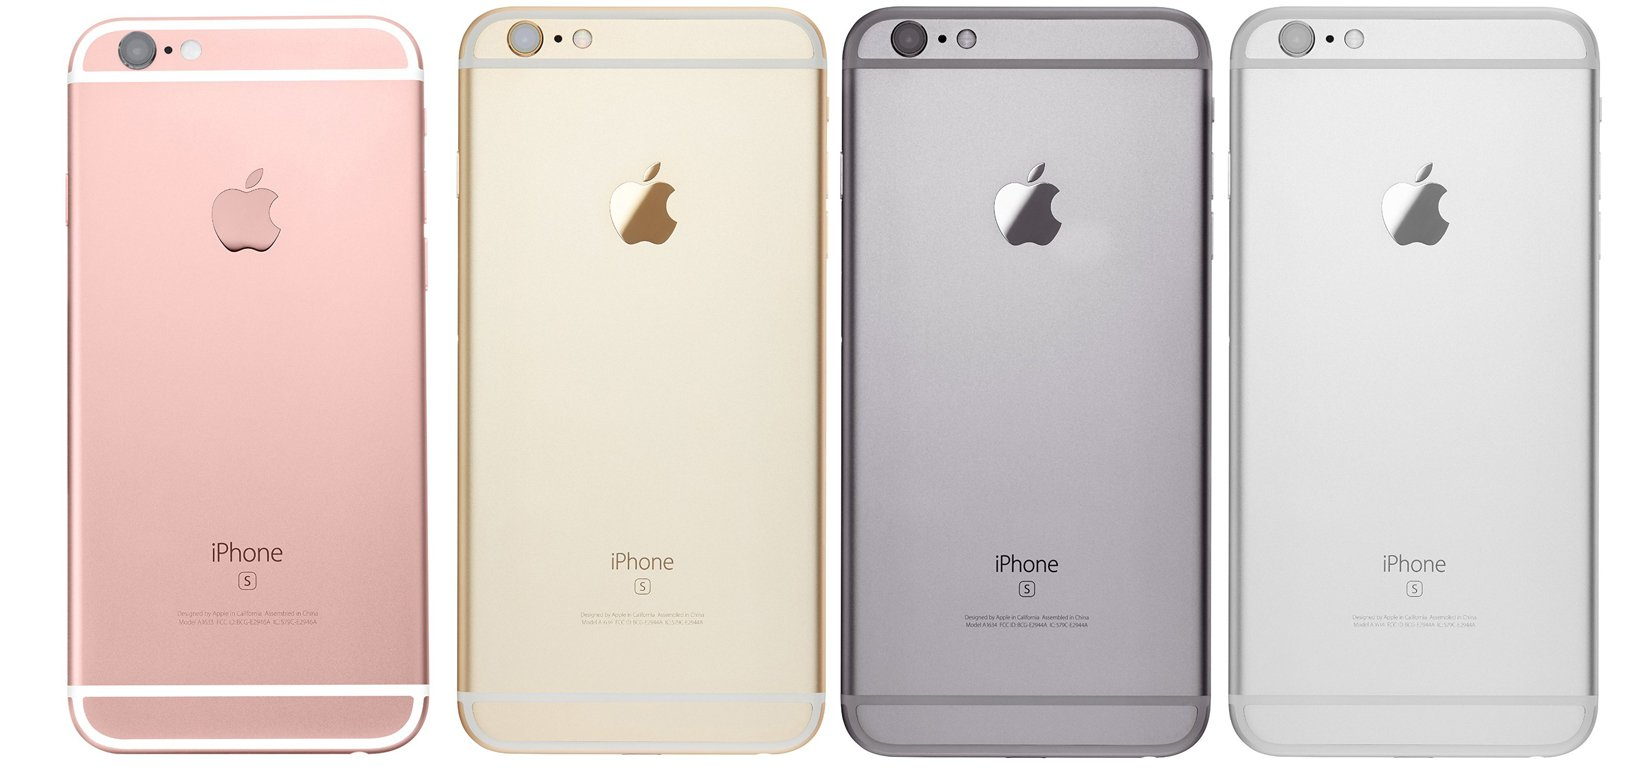 Apple iPhone 6s Plus - imágenes